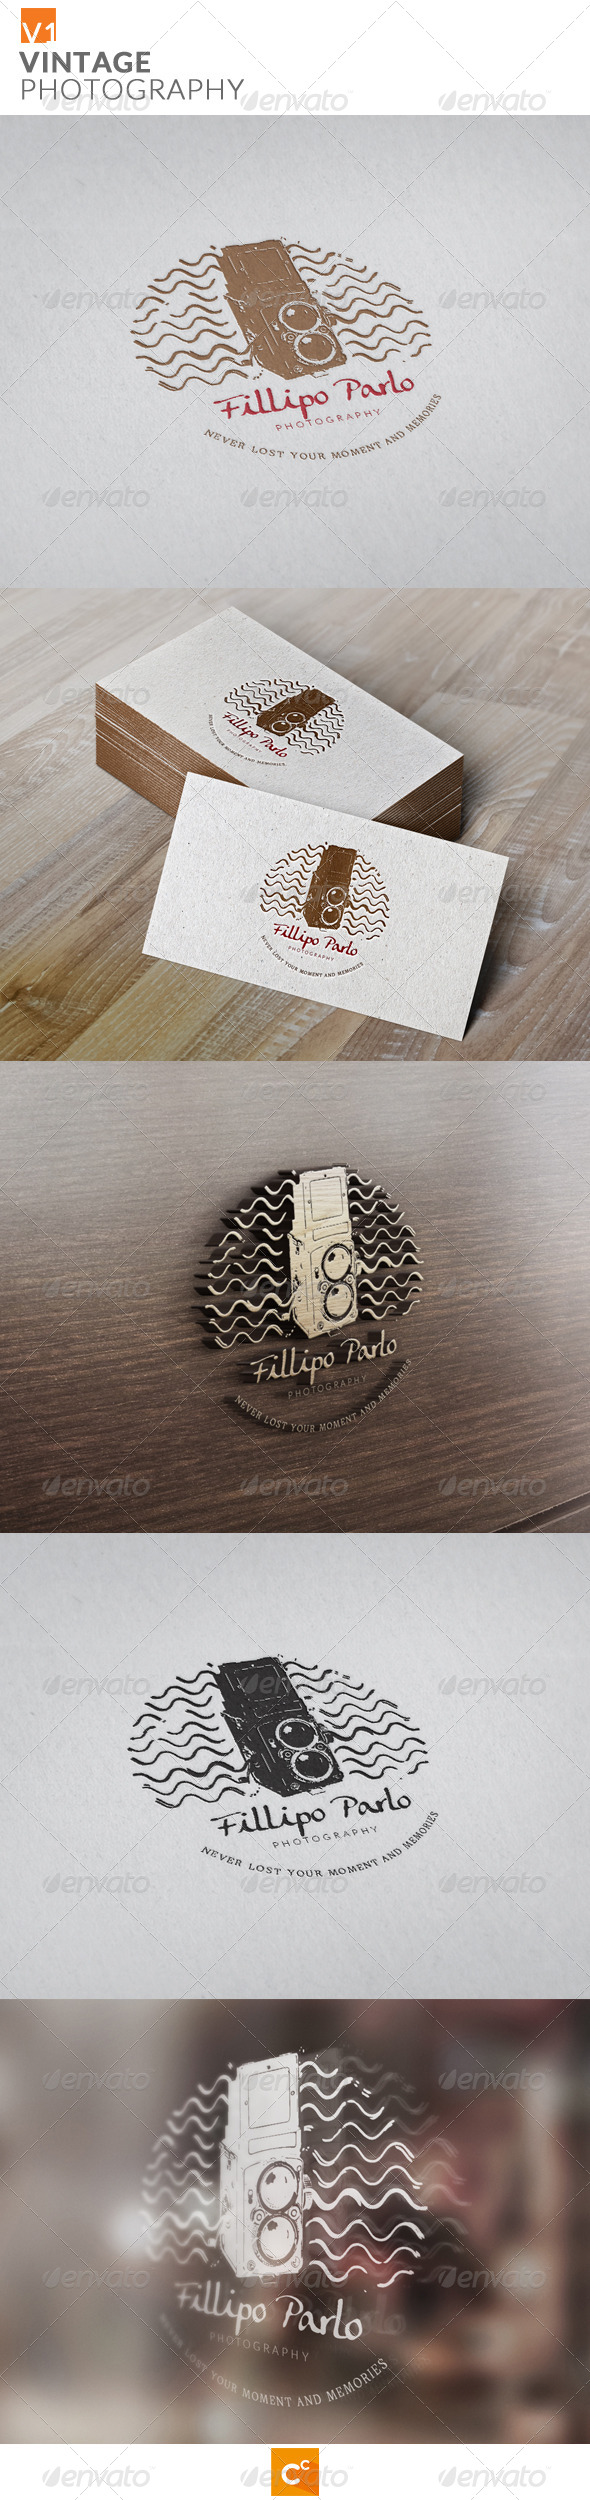 GraphicRiver Vintage Photography 8685569